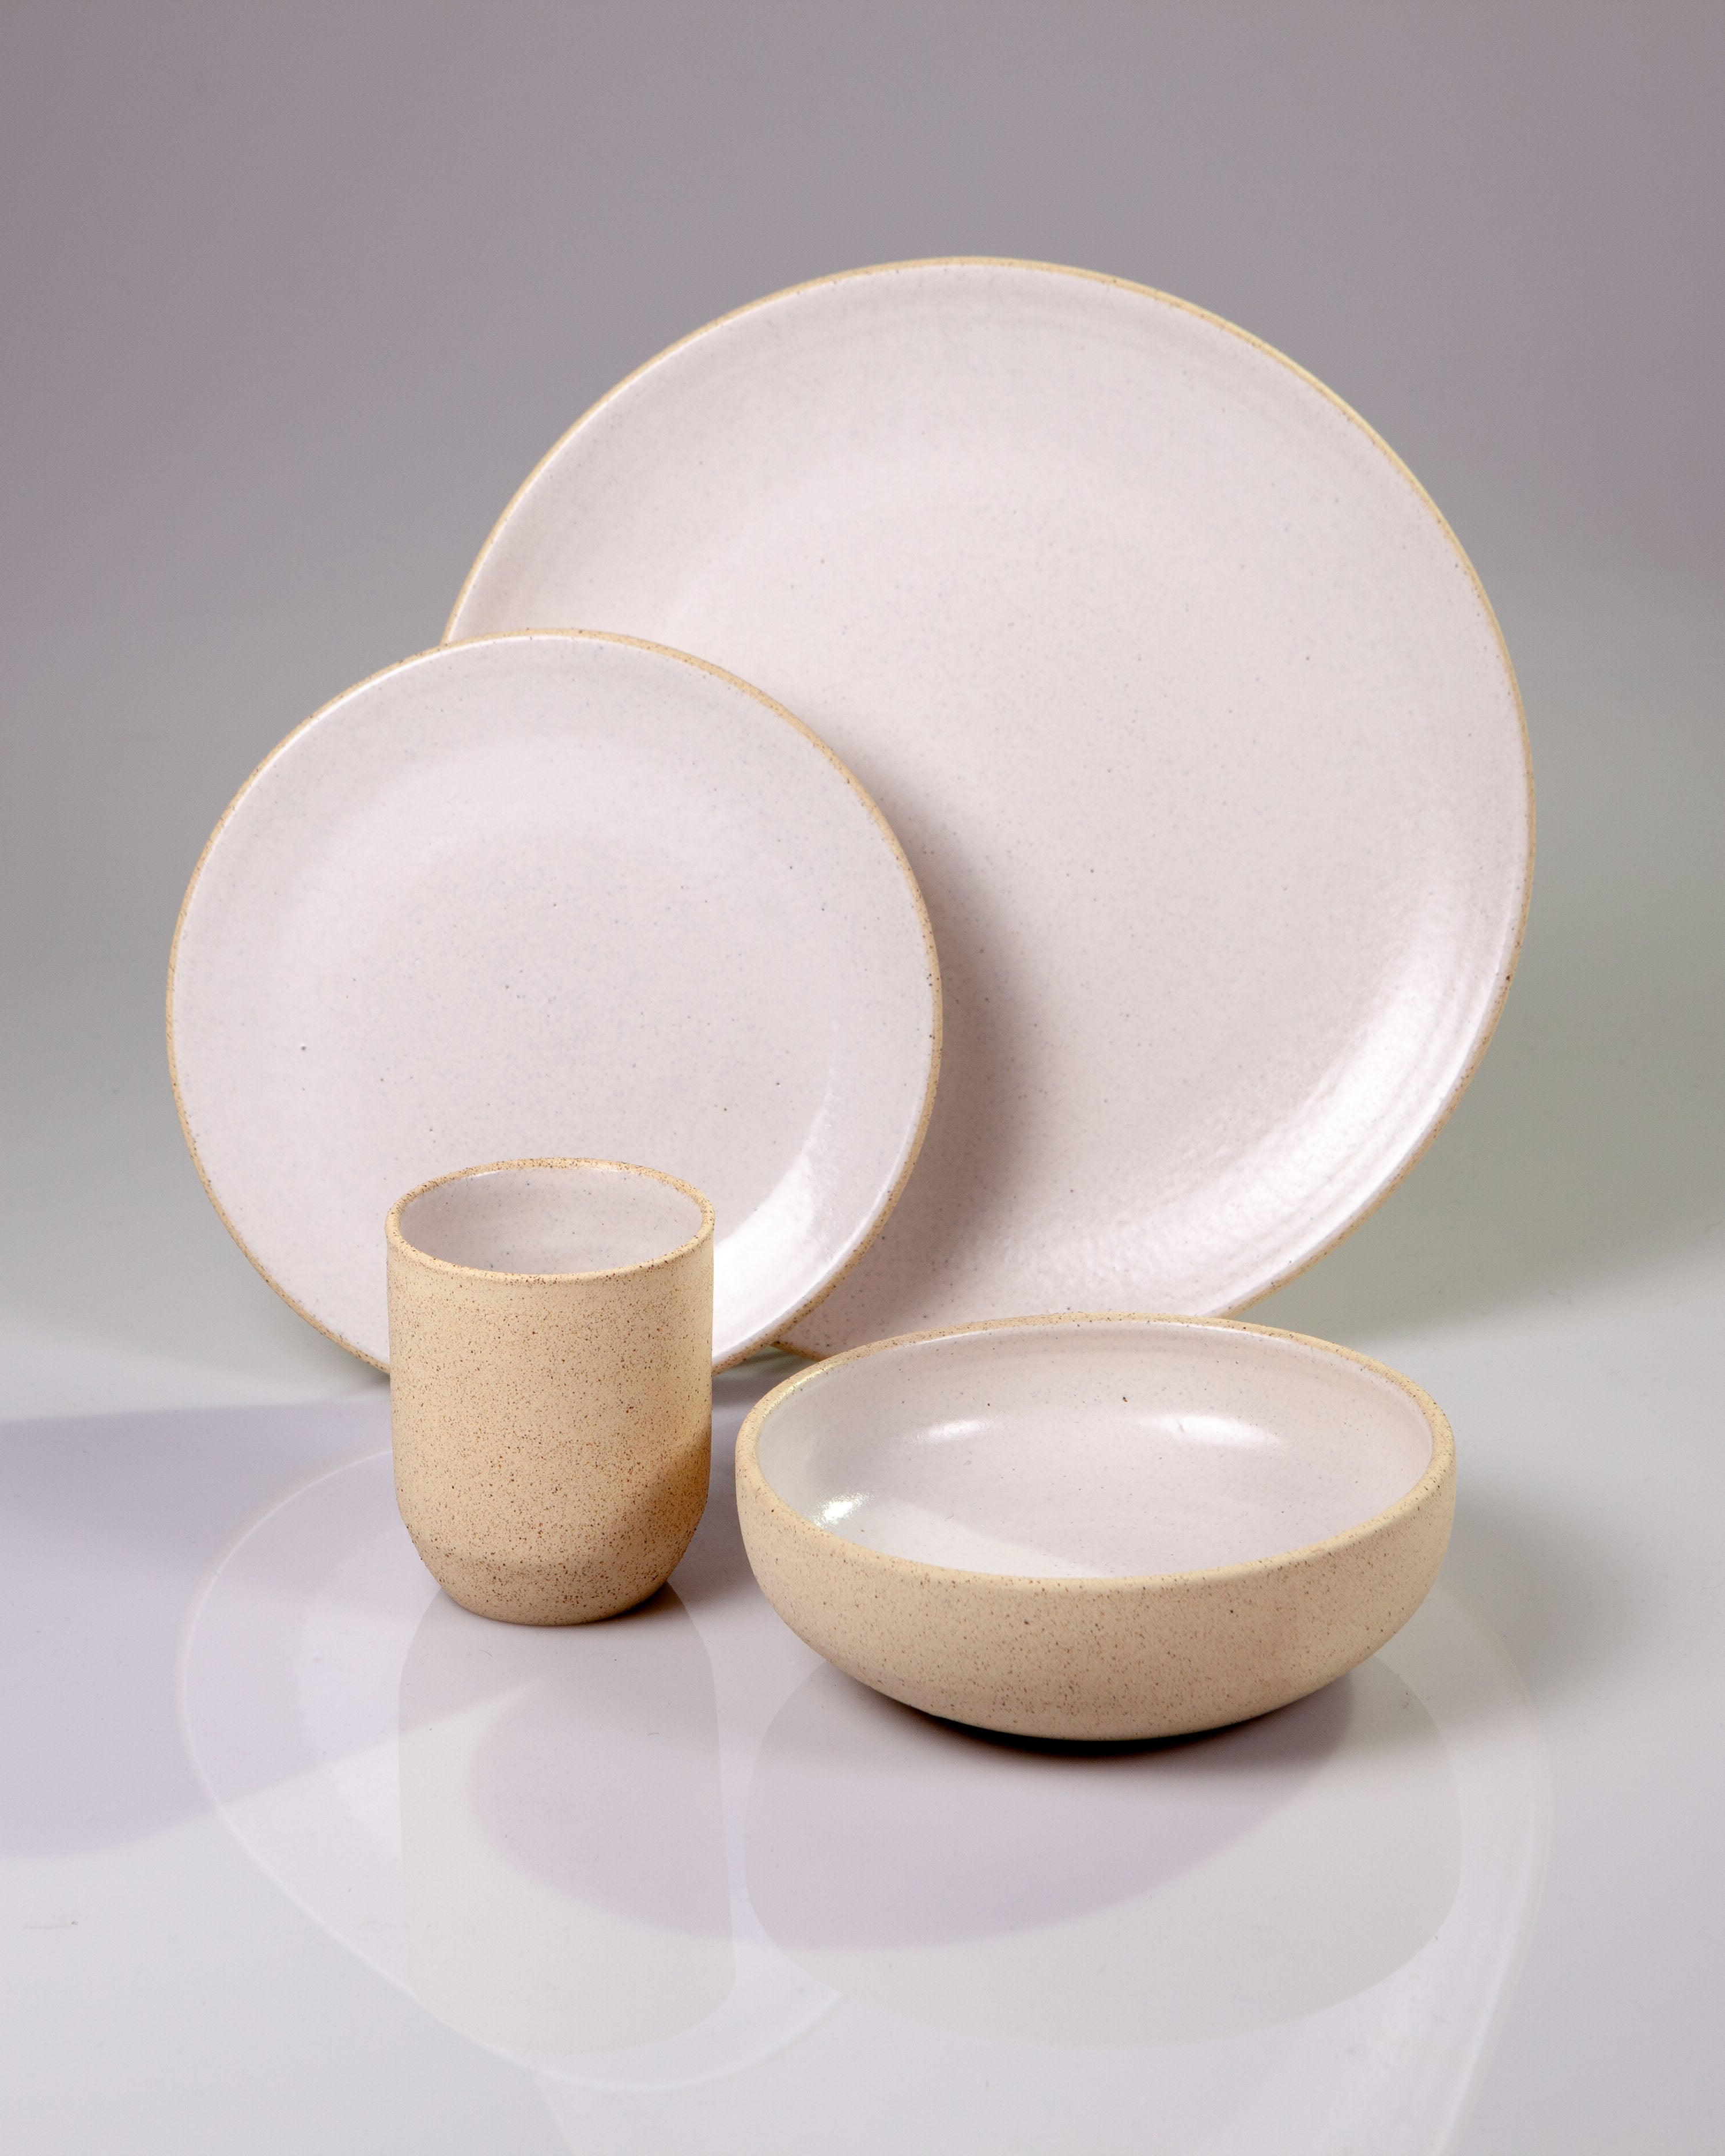 Handmade ceramic place setting plates cup bowl ivory white organic texture